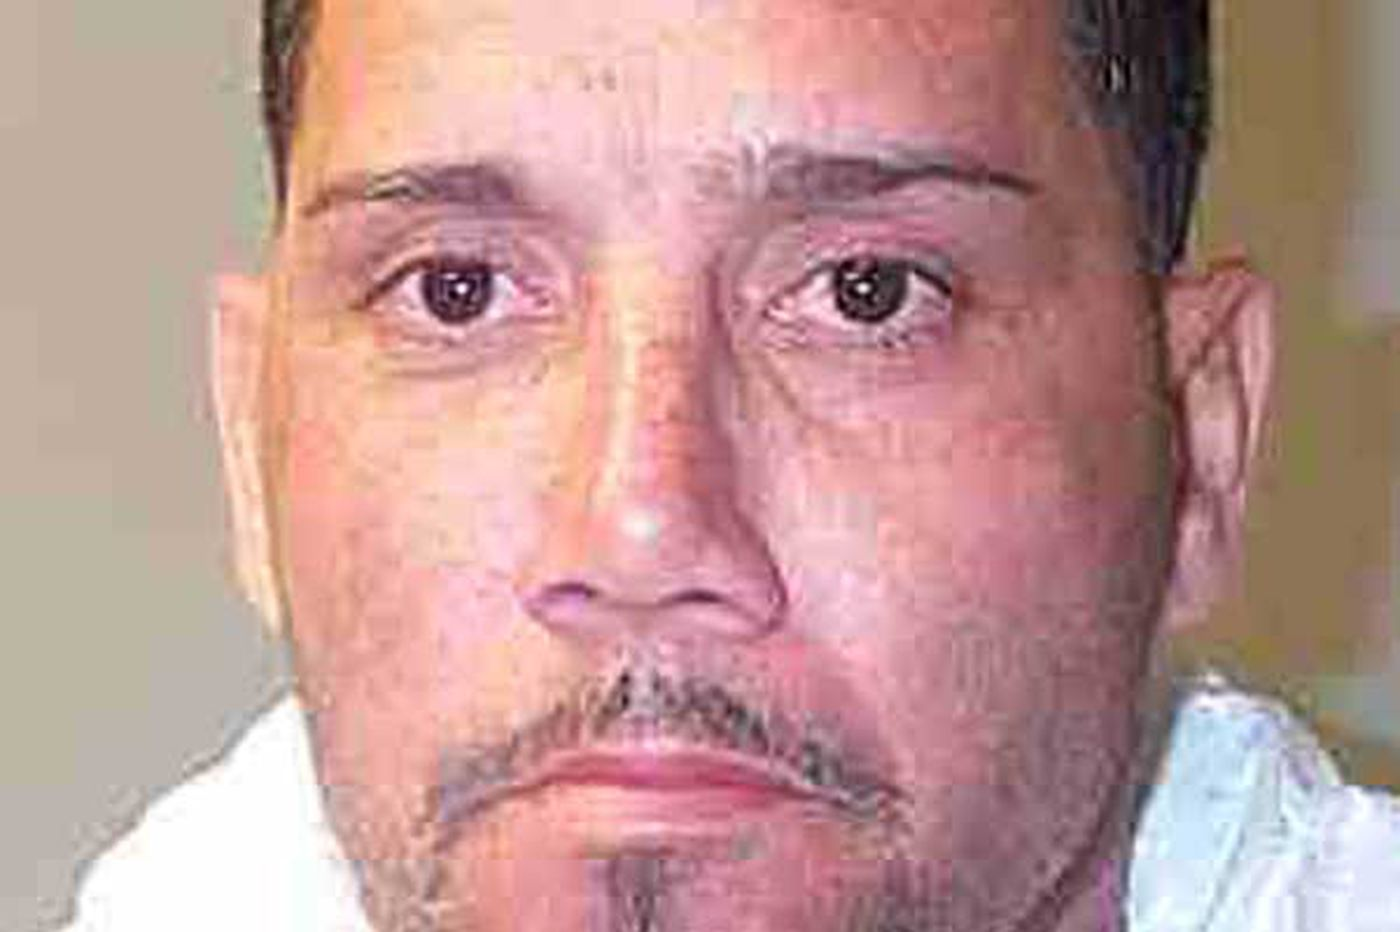 Man charged with concealing remains after body found outside Maple Shade hotel